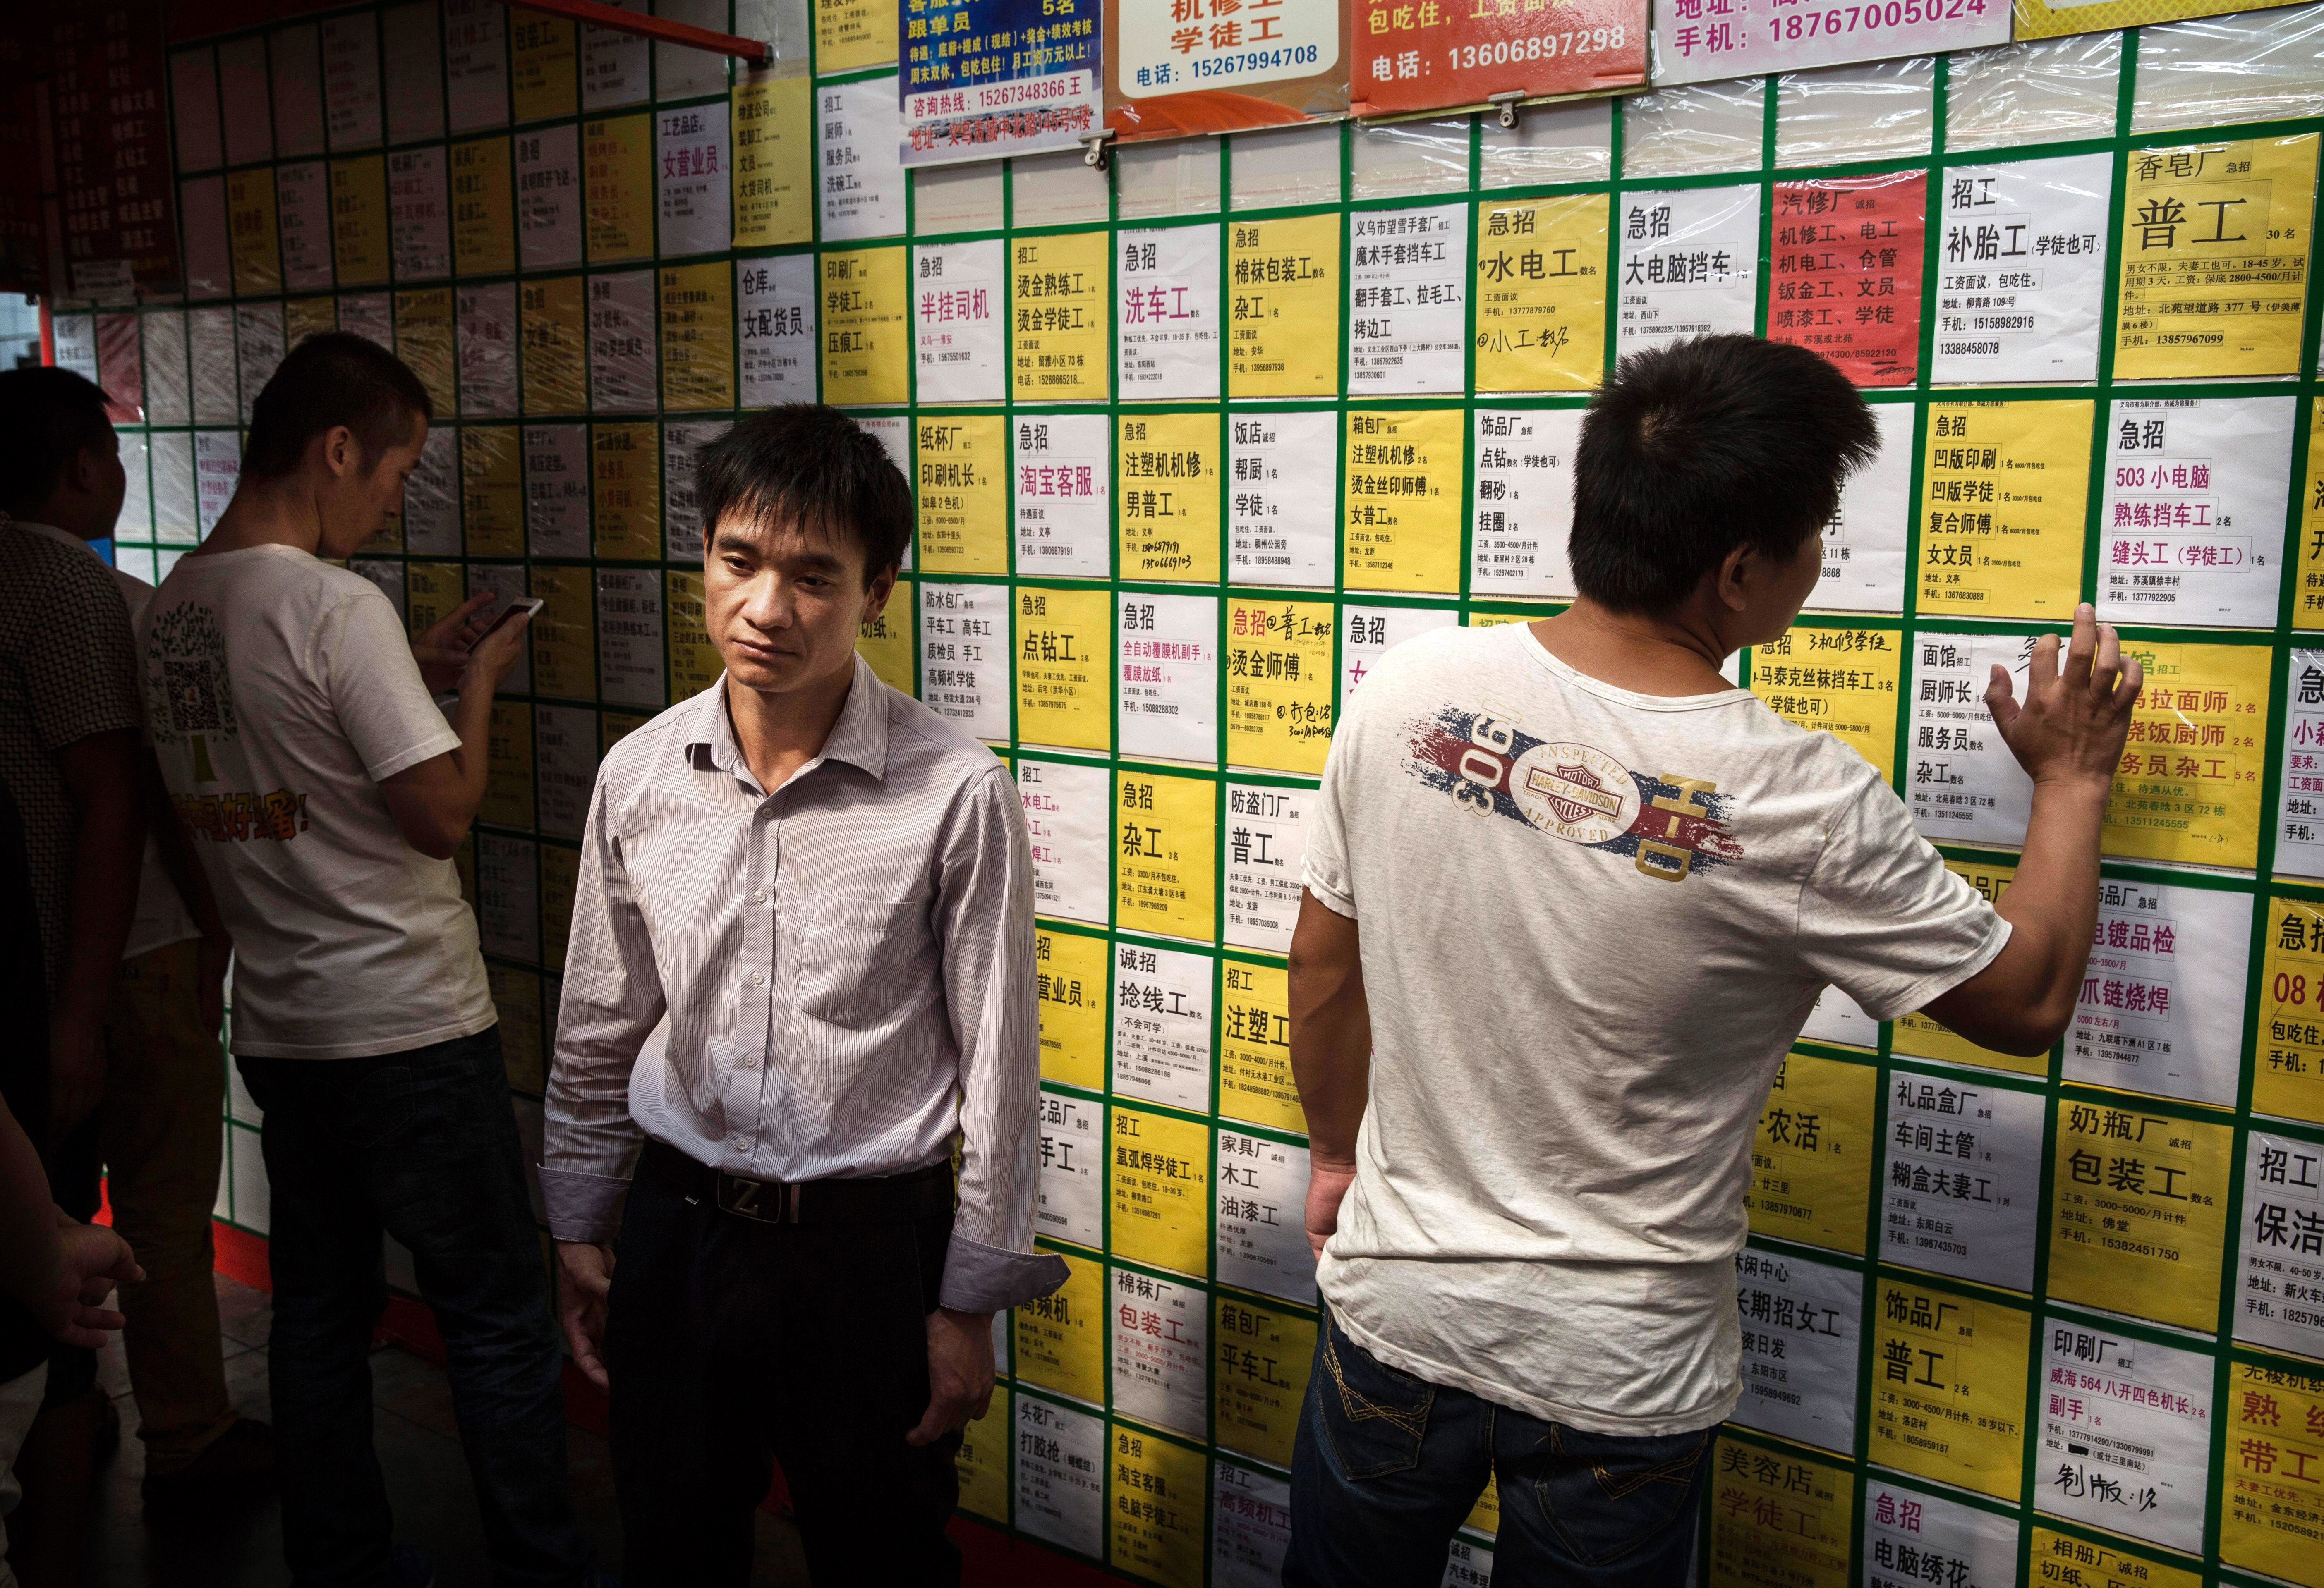 National Vaccine Scandal in China Becomes Source of Frustration and Outrage